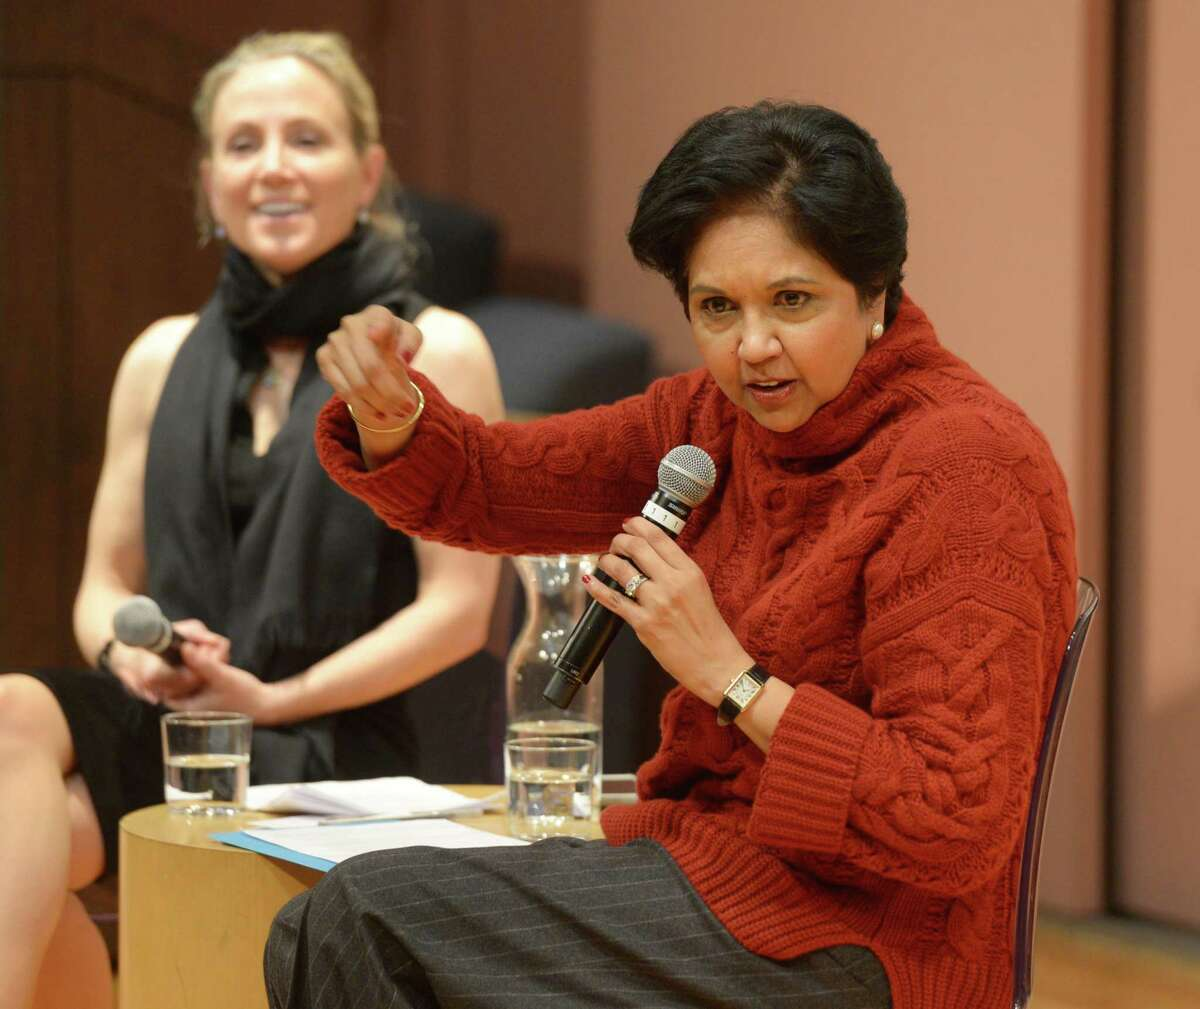 PepsiCo Chairman Indra Nooyi, right, speaks with State Sen. Alex Bergstein, D-Greenwich, during the Community Conversation at Greenwich Library's Cole Auditorium in Greenwich, Conn. Thursday, Jan. 24, 2019. The two discussed how to attract and retain businesses in Connecticut as a small group protested the proposal of tolls outside the event. Nooyi has been named to the board of Amazon.